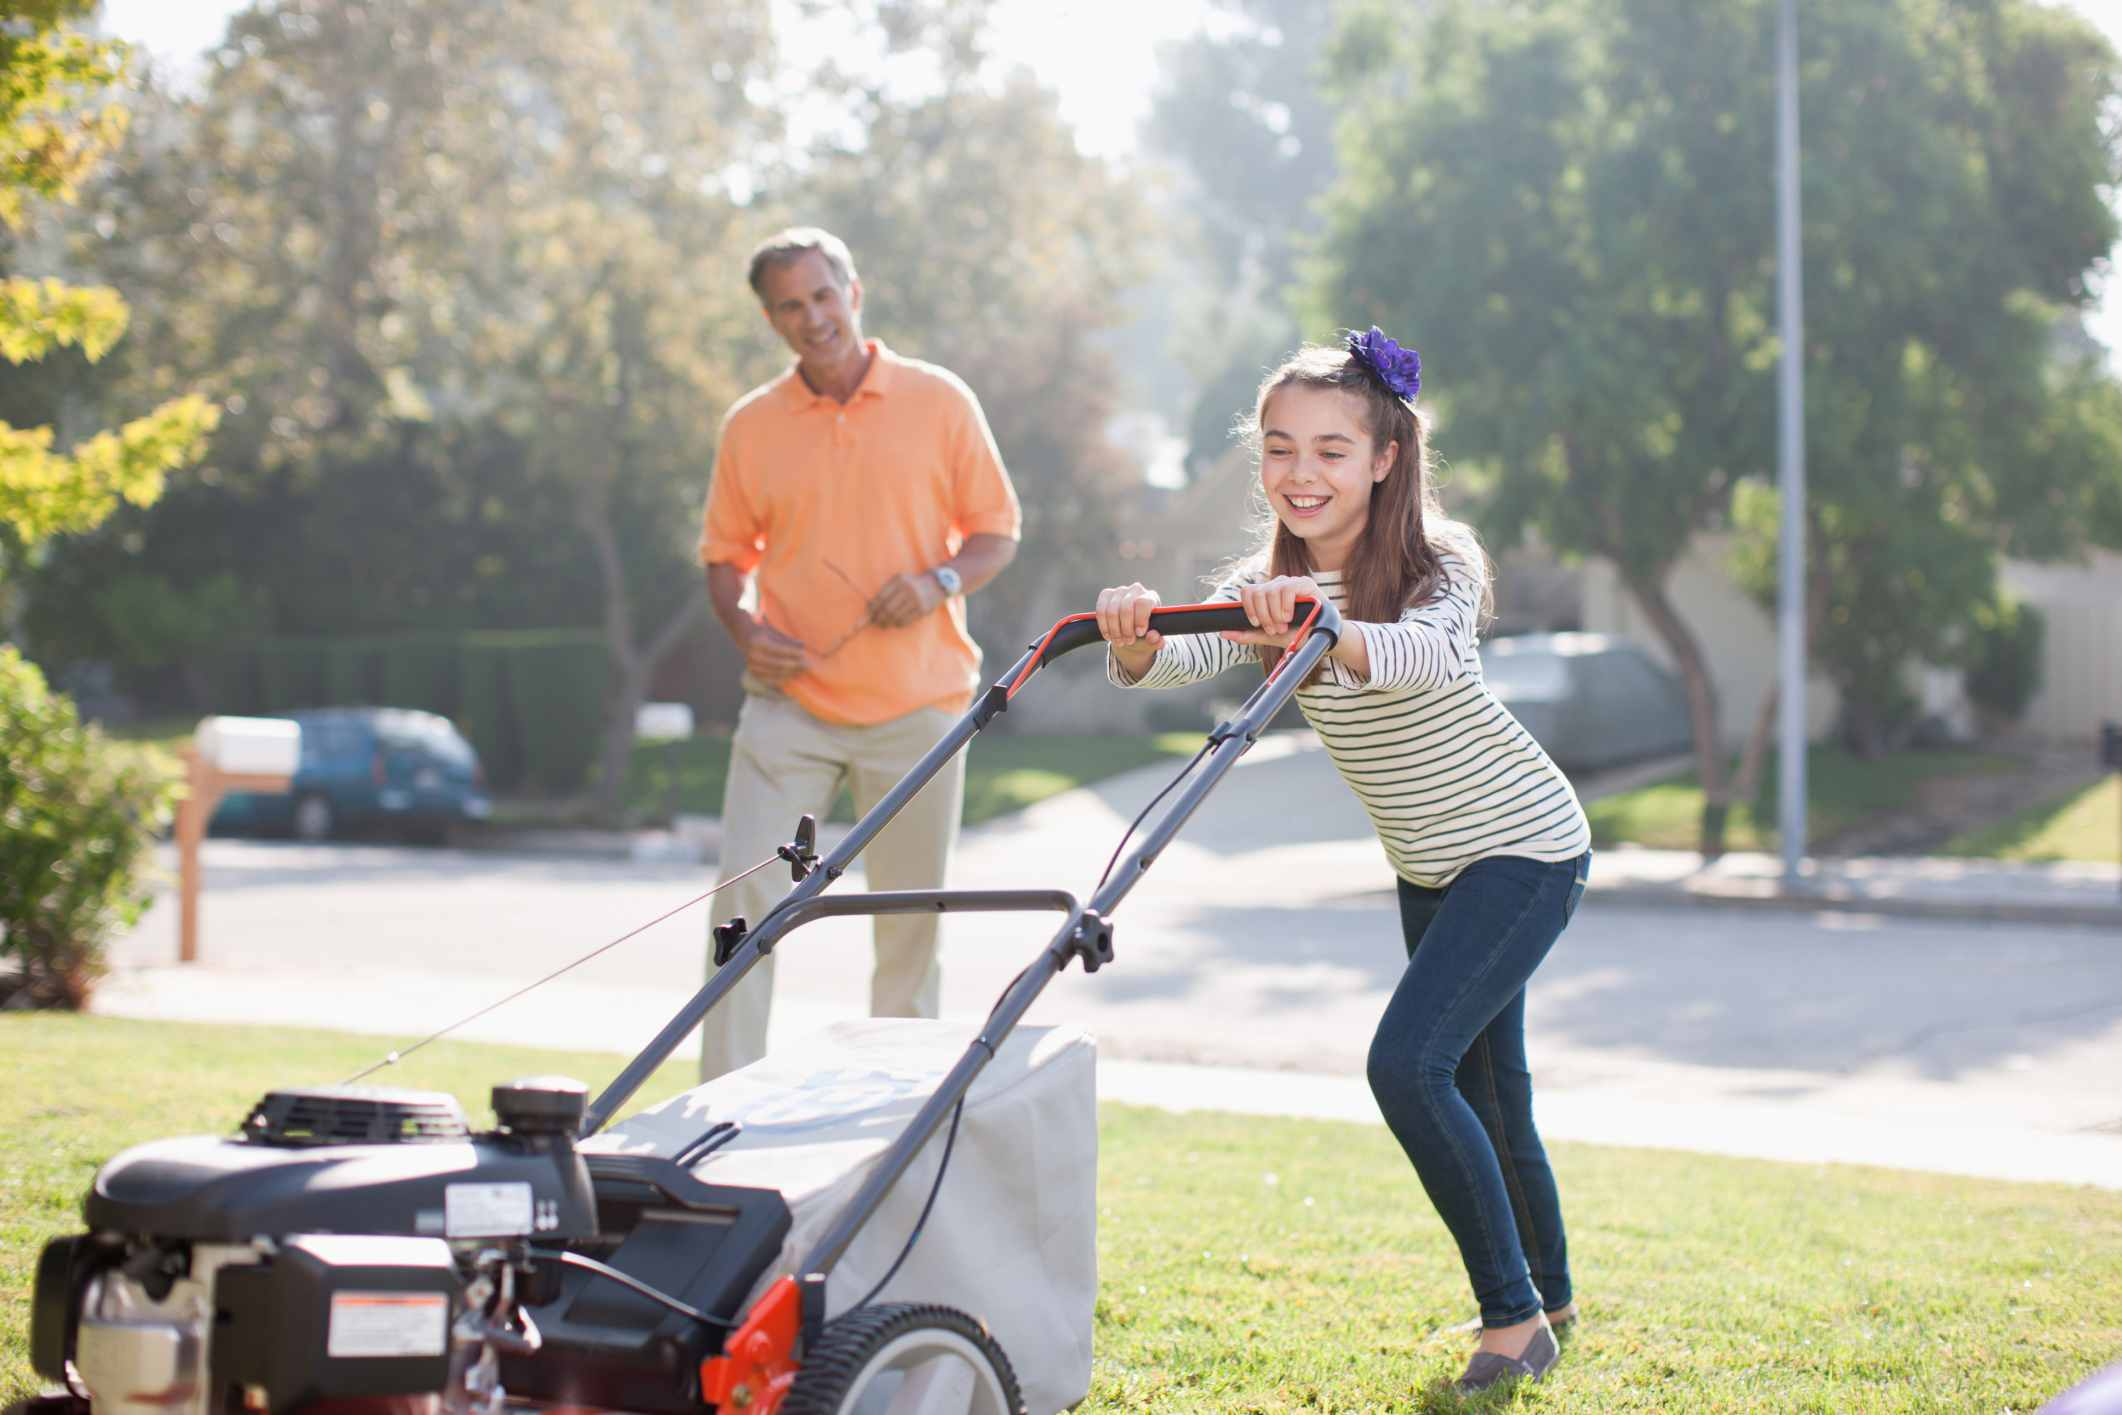 Girl mowing lawn with dad overlooking